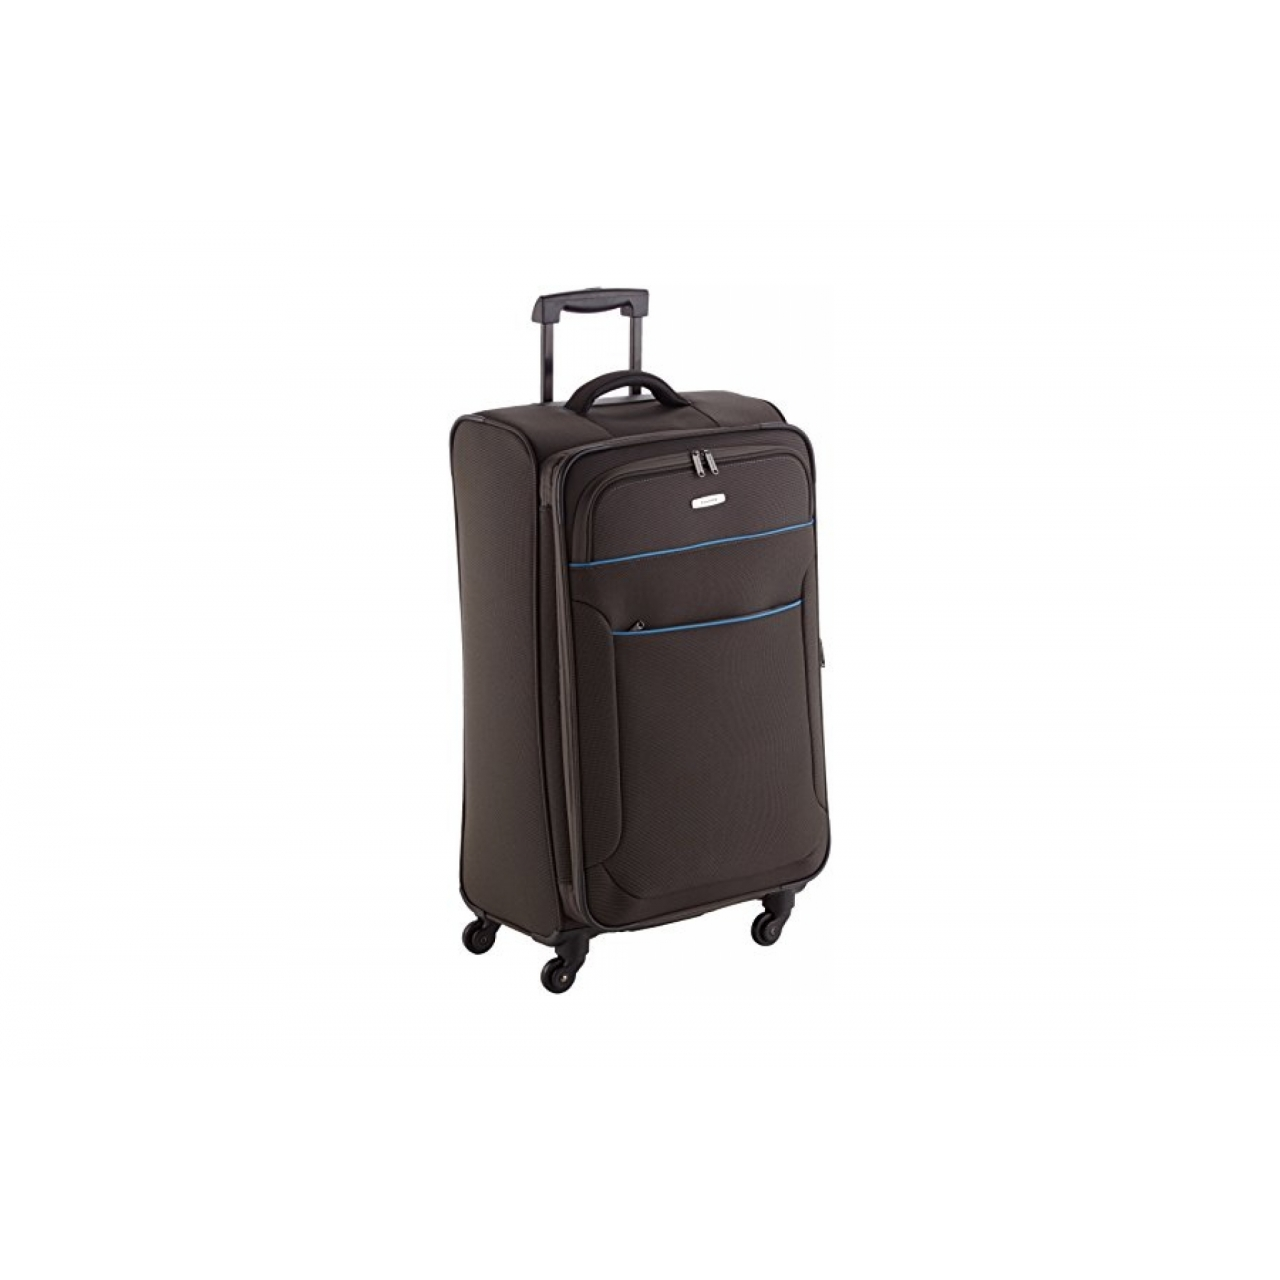 travelite koffer derby 4 rad trolley l test. Black Bedroom Furniture Sets. Home Design Ideas